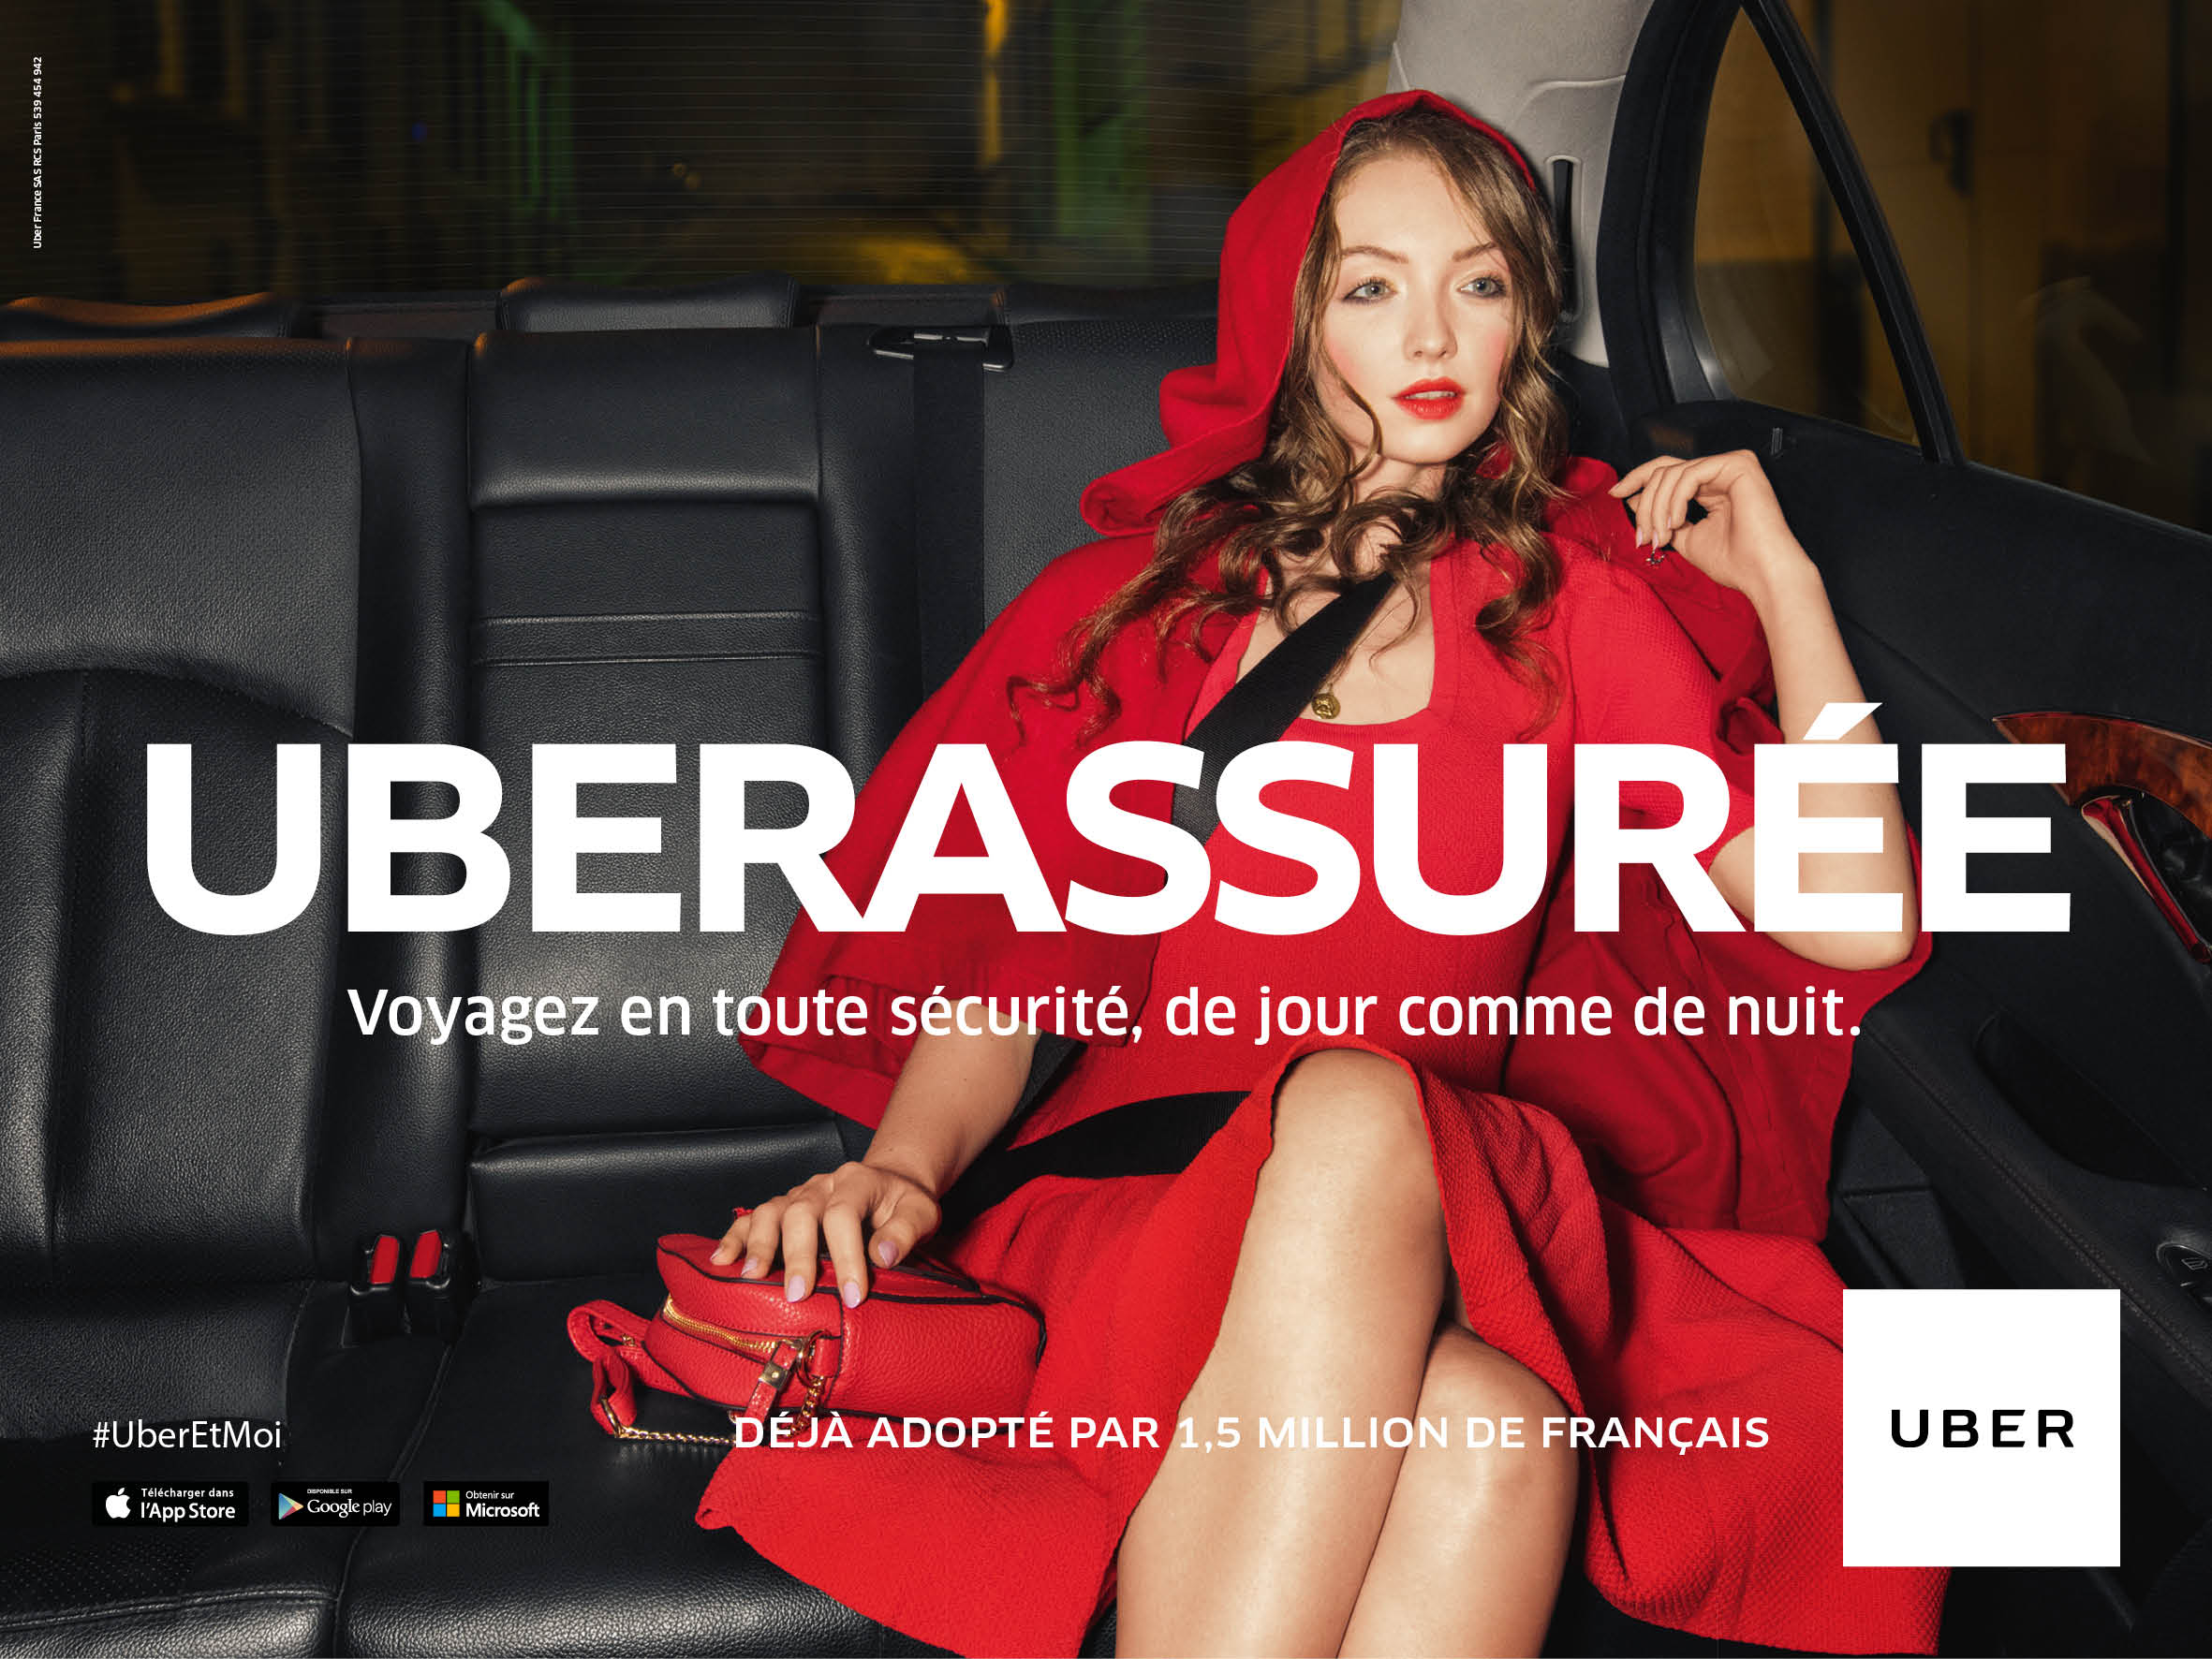 uber-france-publicite-marketing-application-utilisateurs-passagers-mars-2016-agence-marcel-publicis-13